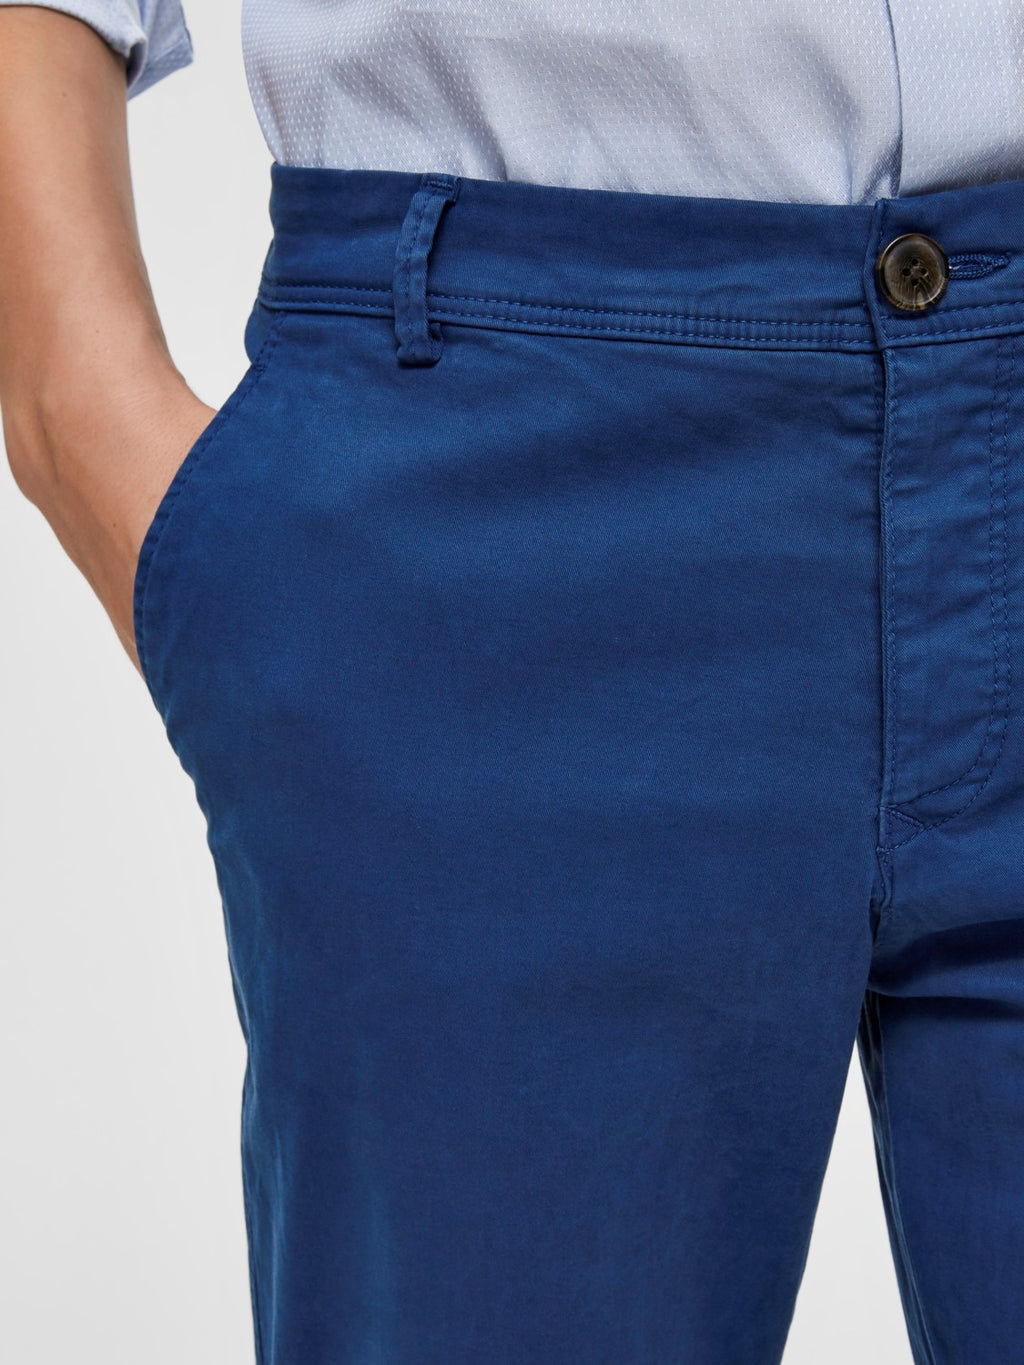 Selectedhomme luca estate blue